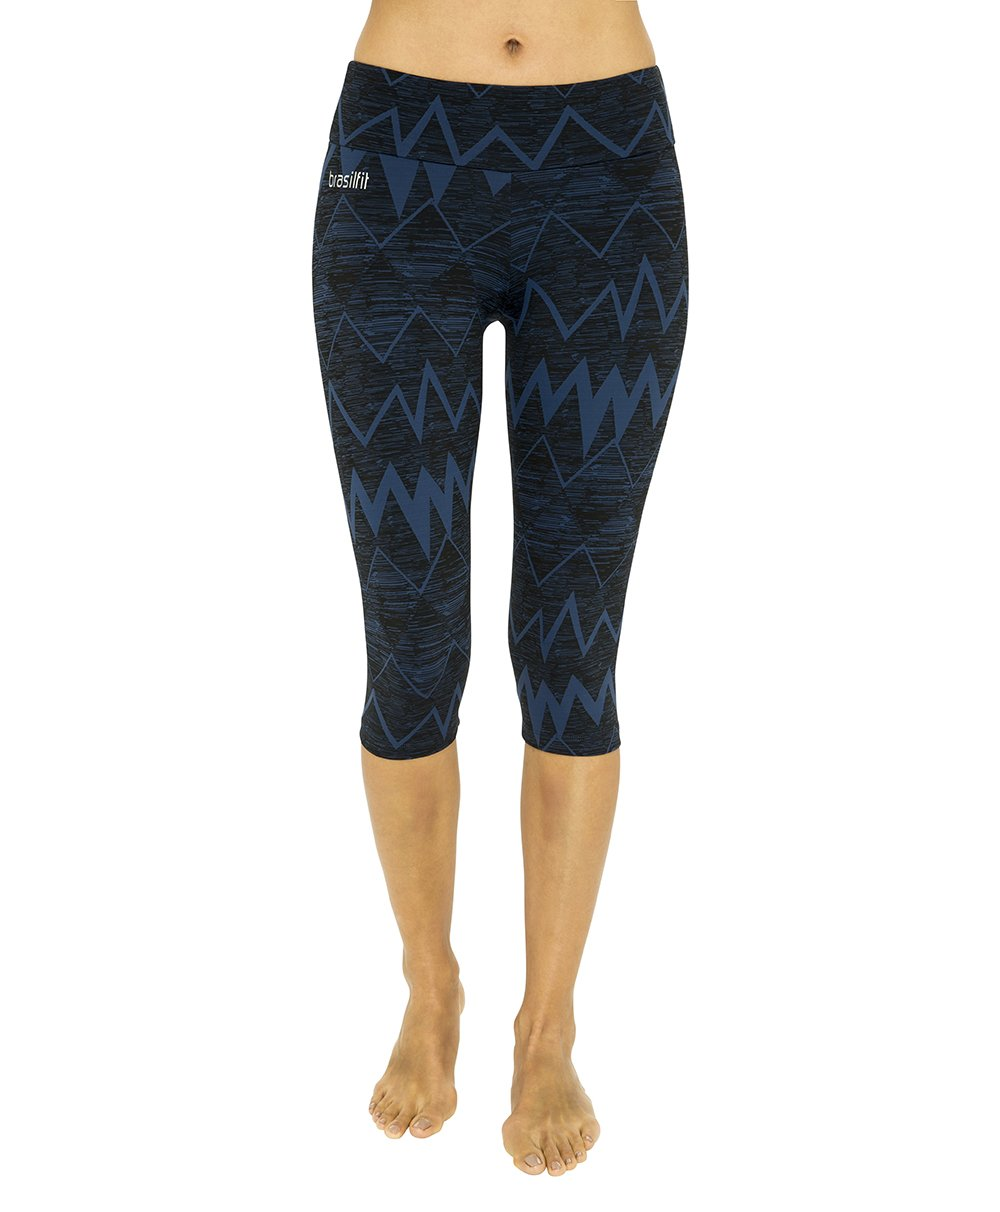 Jupiter Under Knee Legging